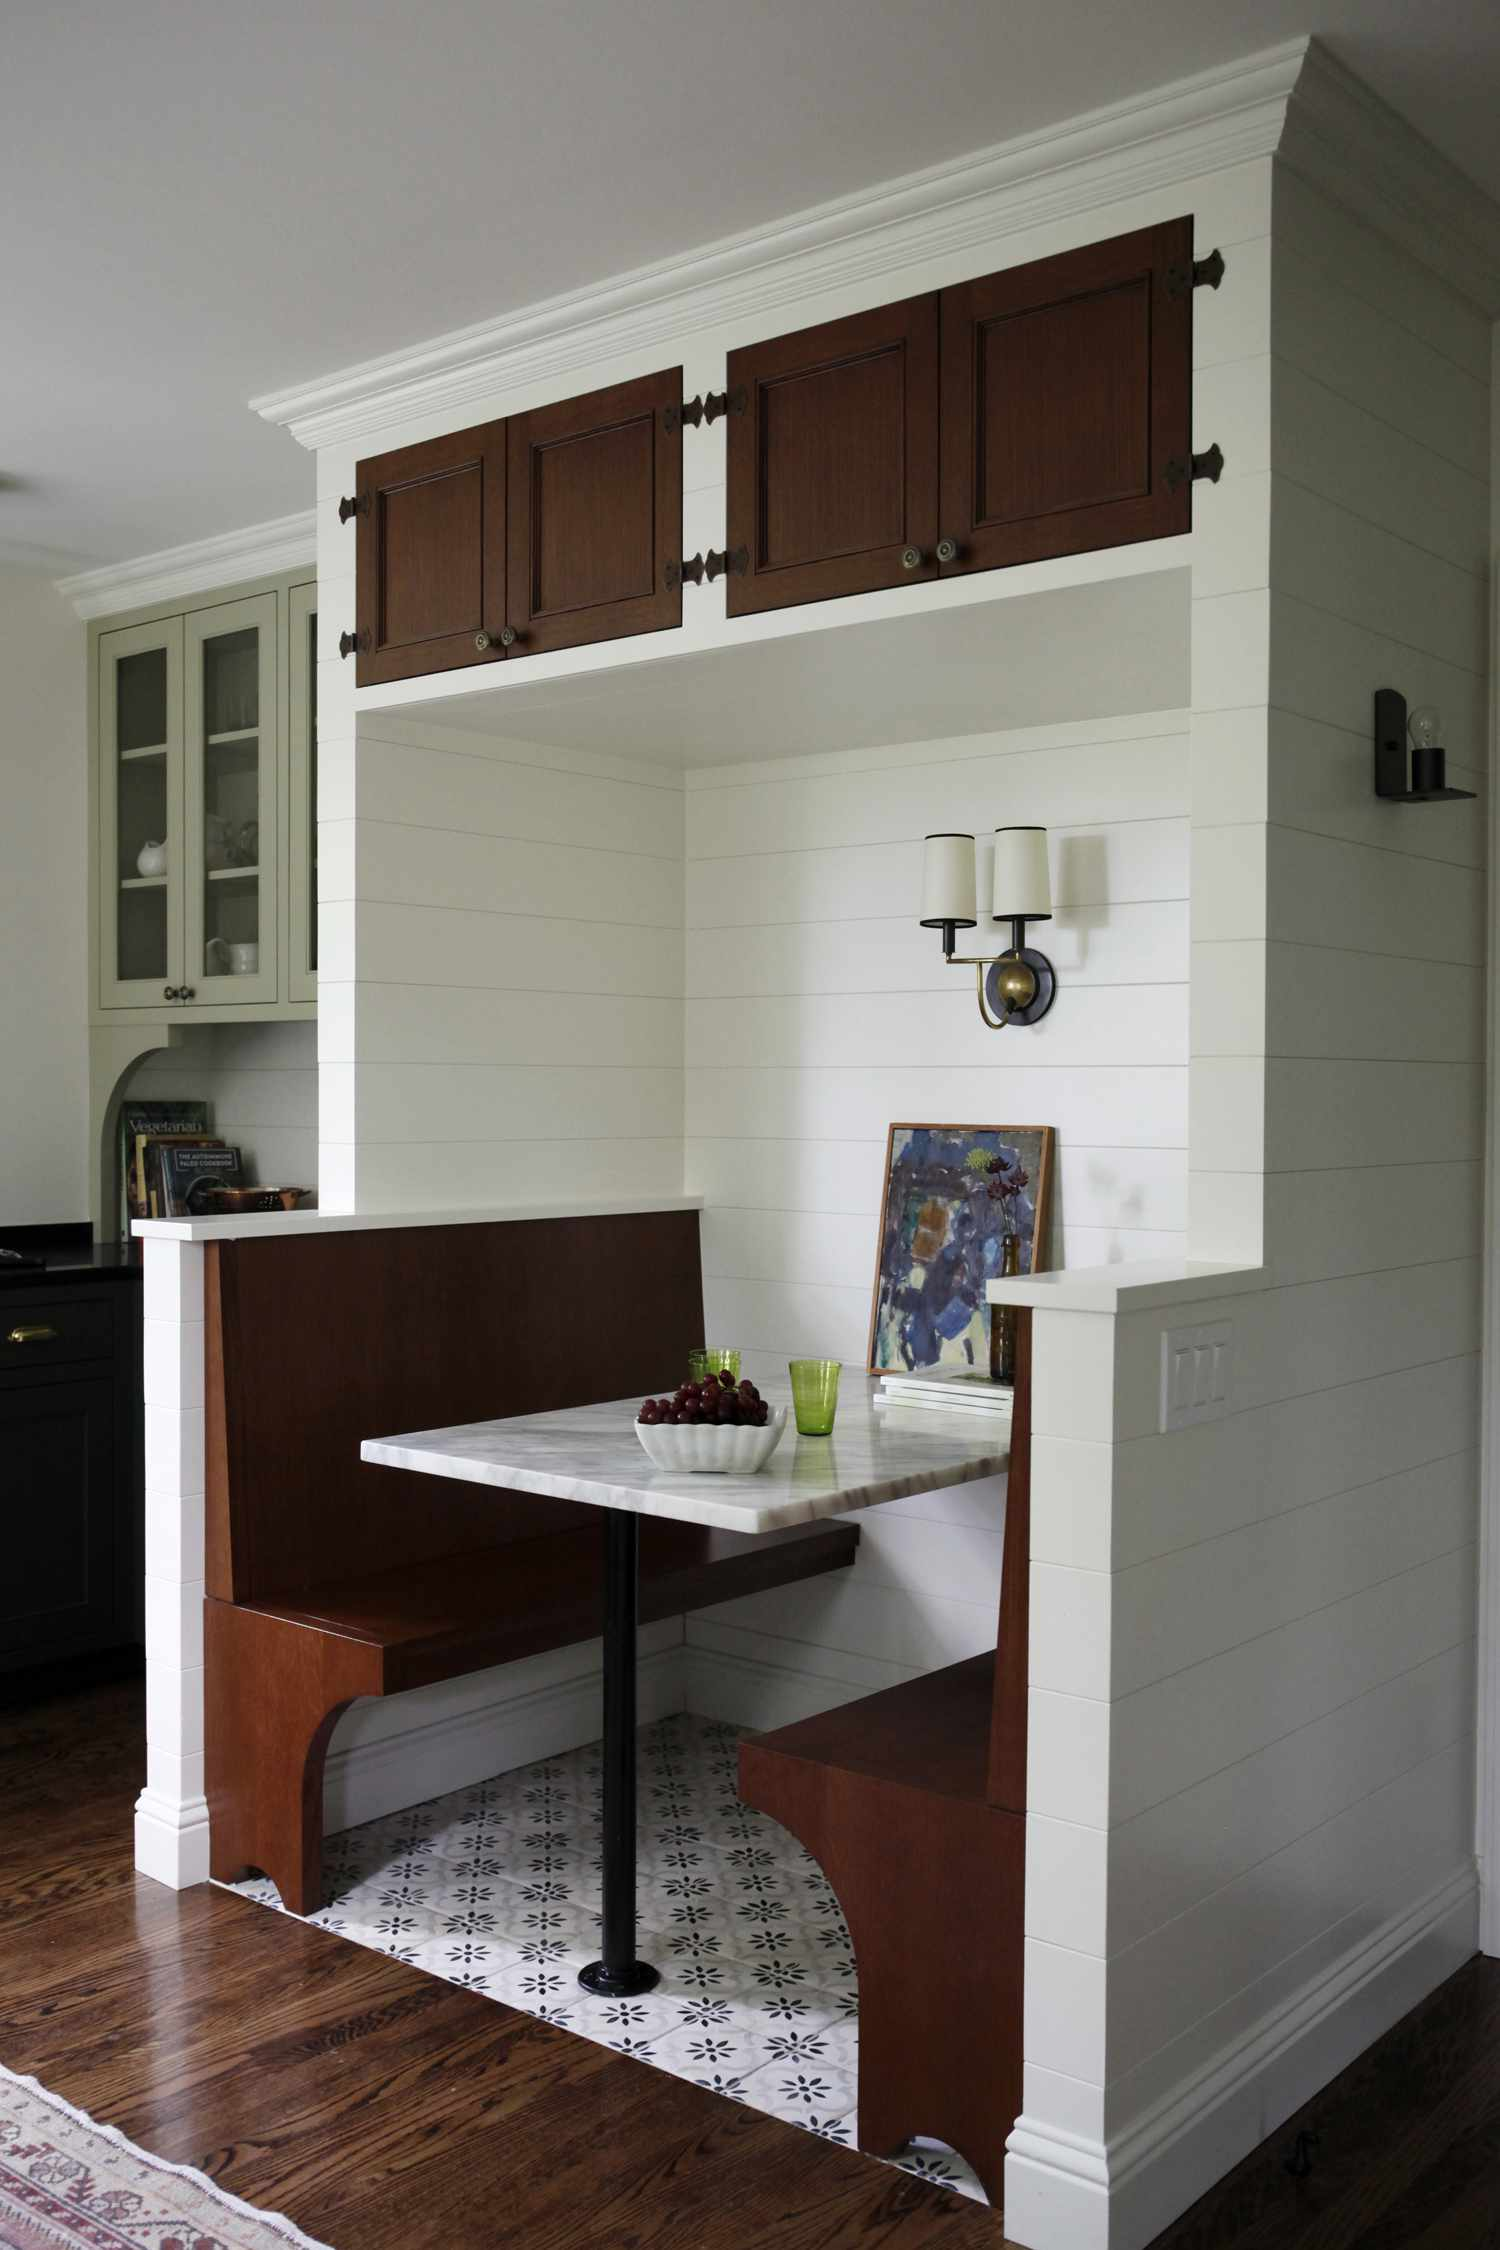 In-kitchen booth